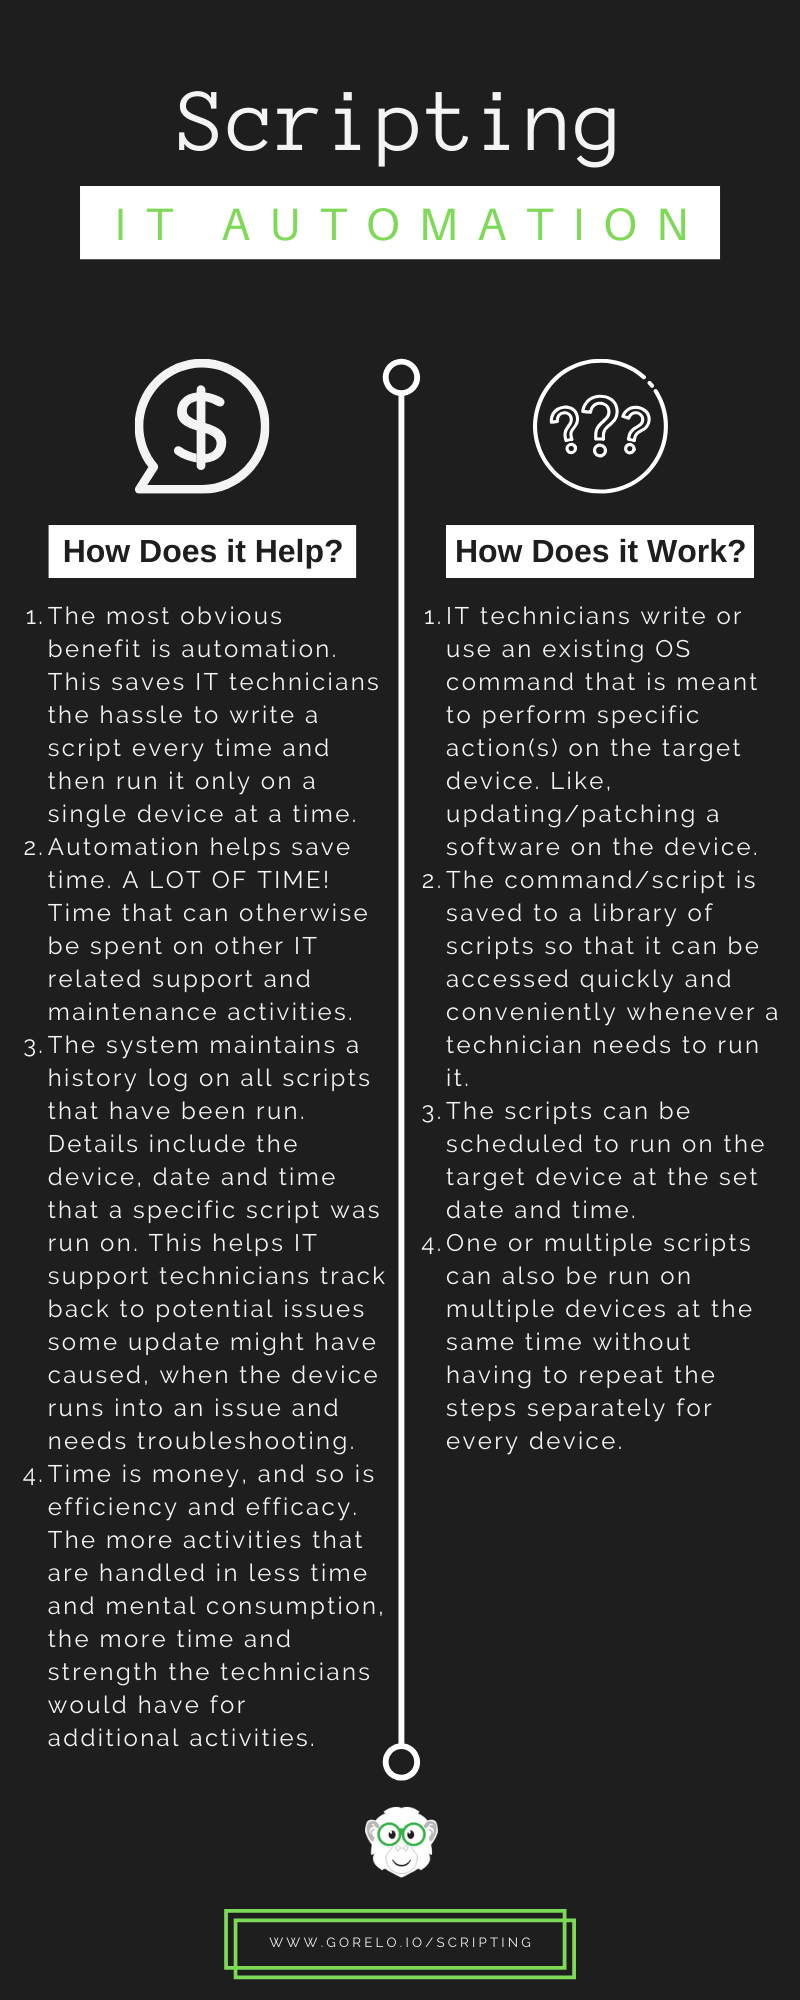 Scripting and IT Automation